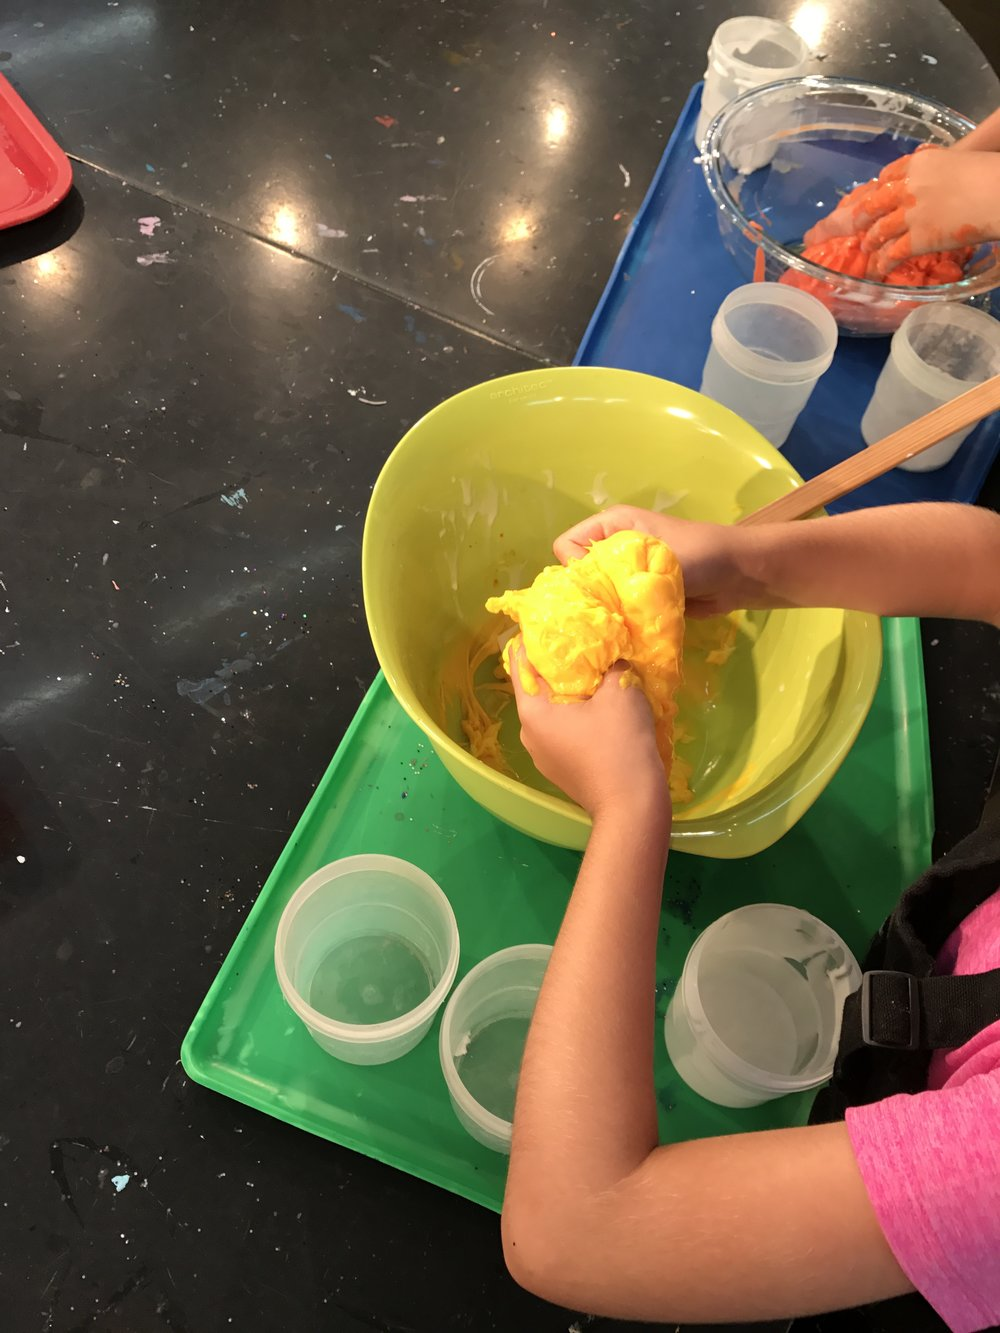 Tuesday, May 29 - Slime!2:00 pm - 6:00 pm$8 members / $10 non-membersCome make slime!  Kids will get to mix, measure and stir to create their own slime.  Their slime will be sent home in a ziploc baggie.  Sign up for a time slot here.